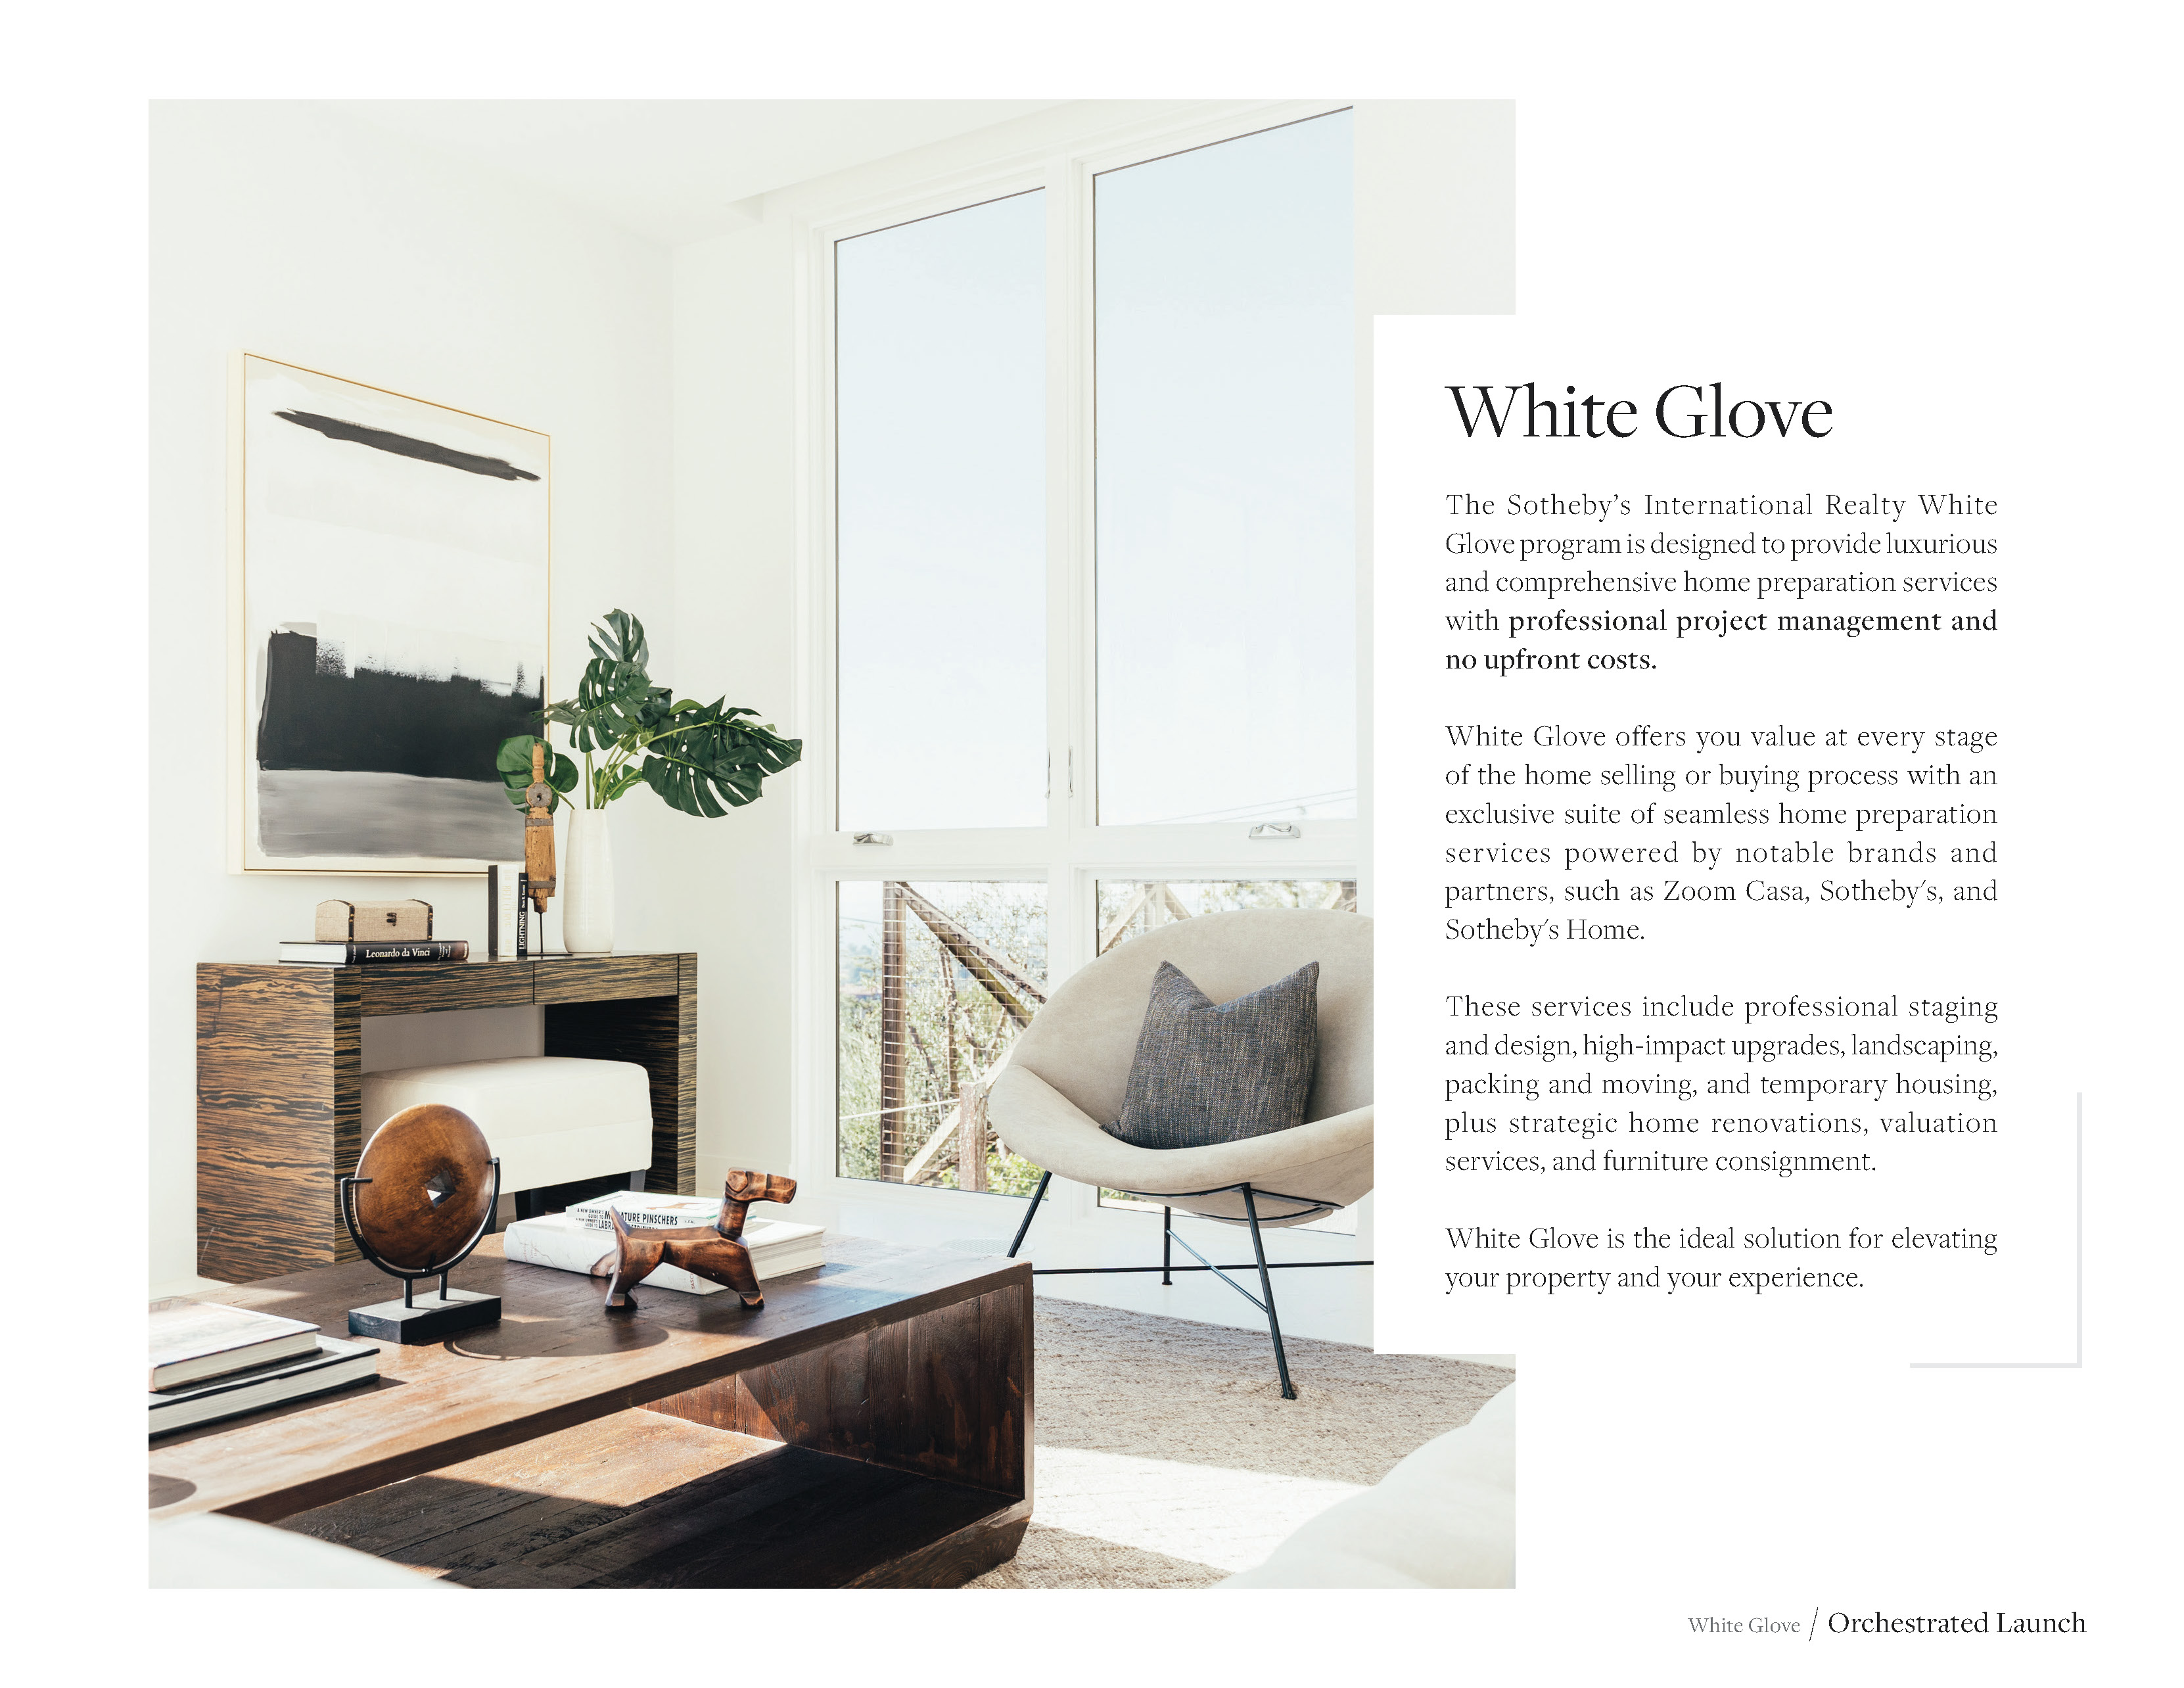 Discover seamless home preparation solutions through Sotheby's White Glove